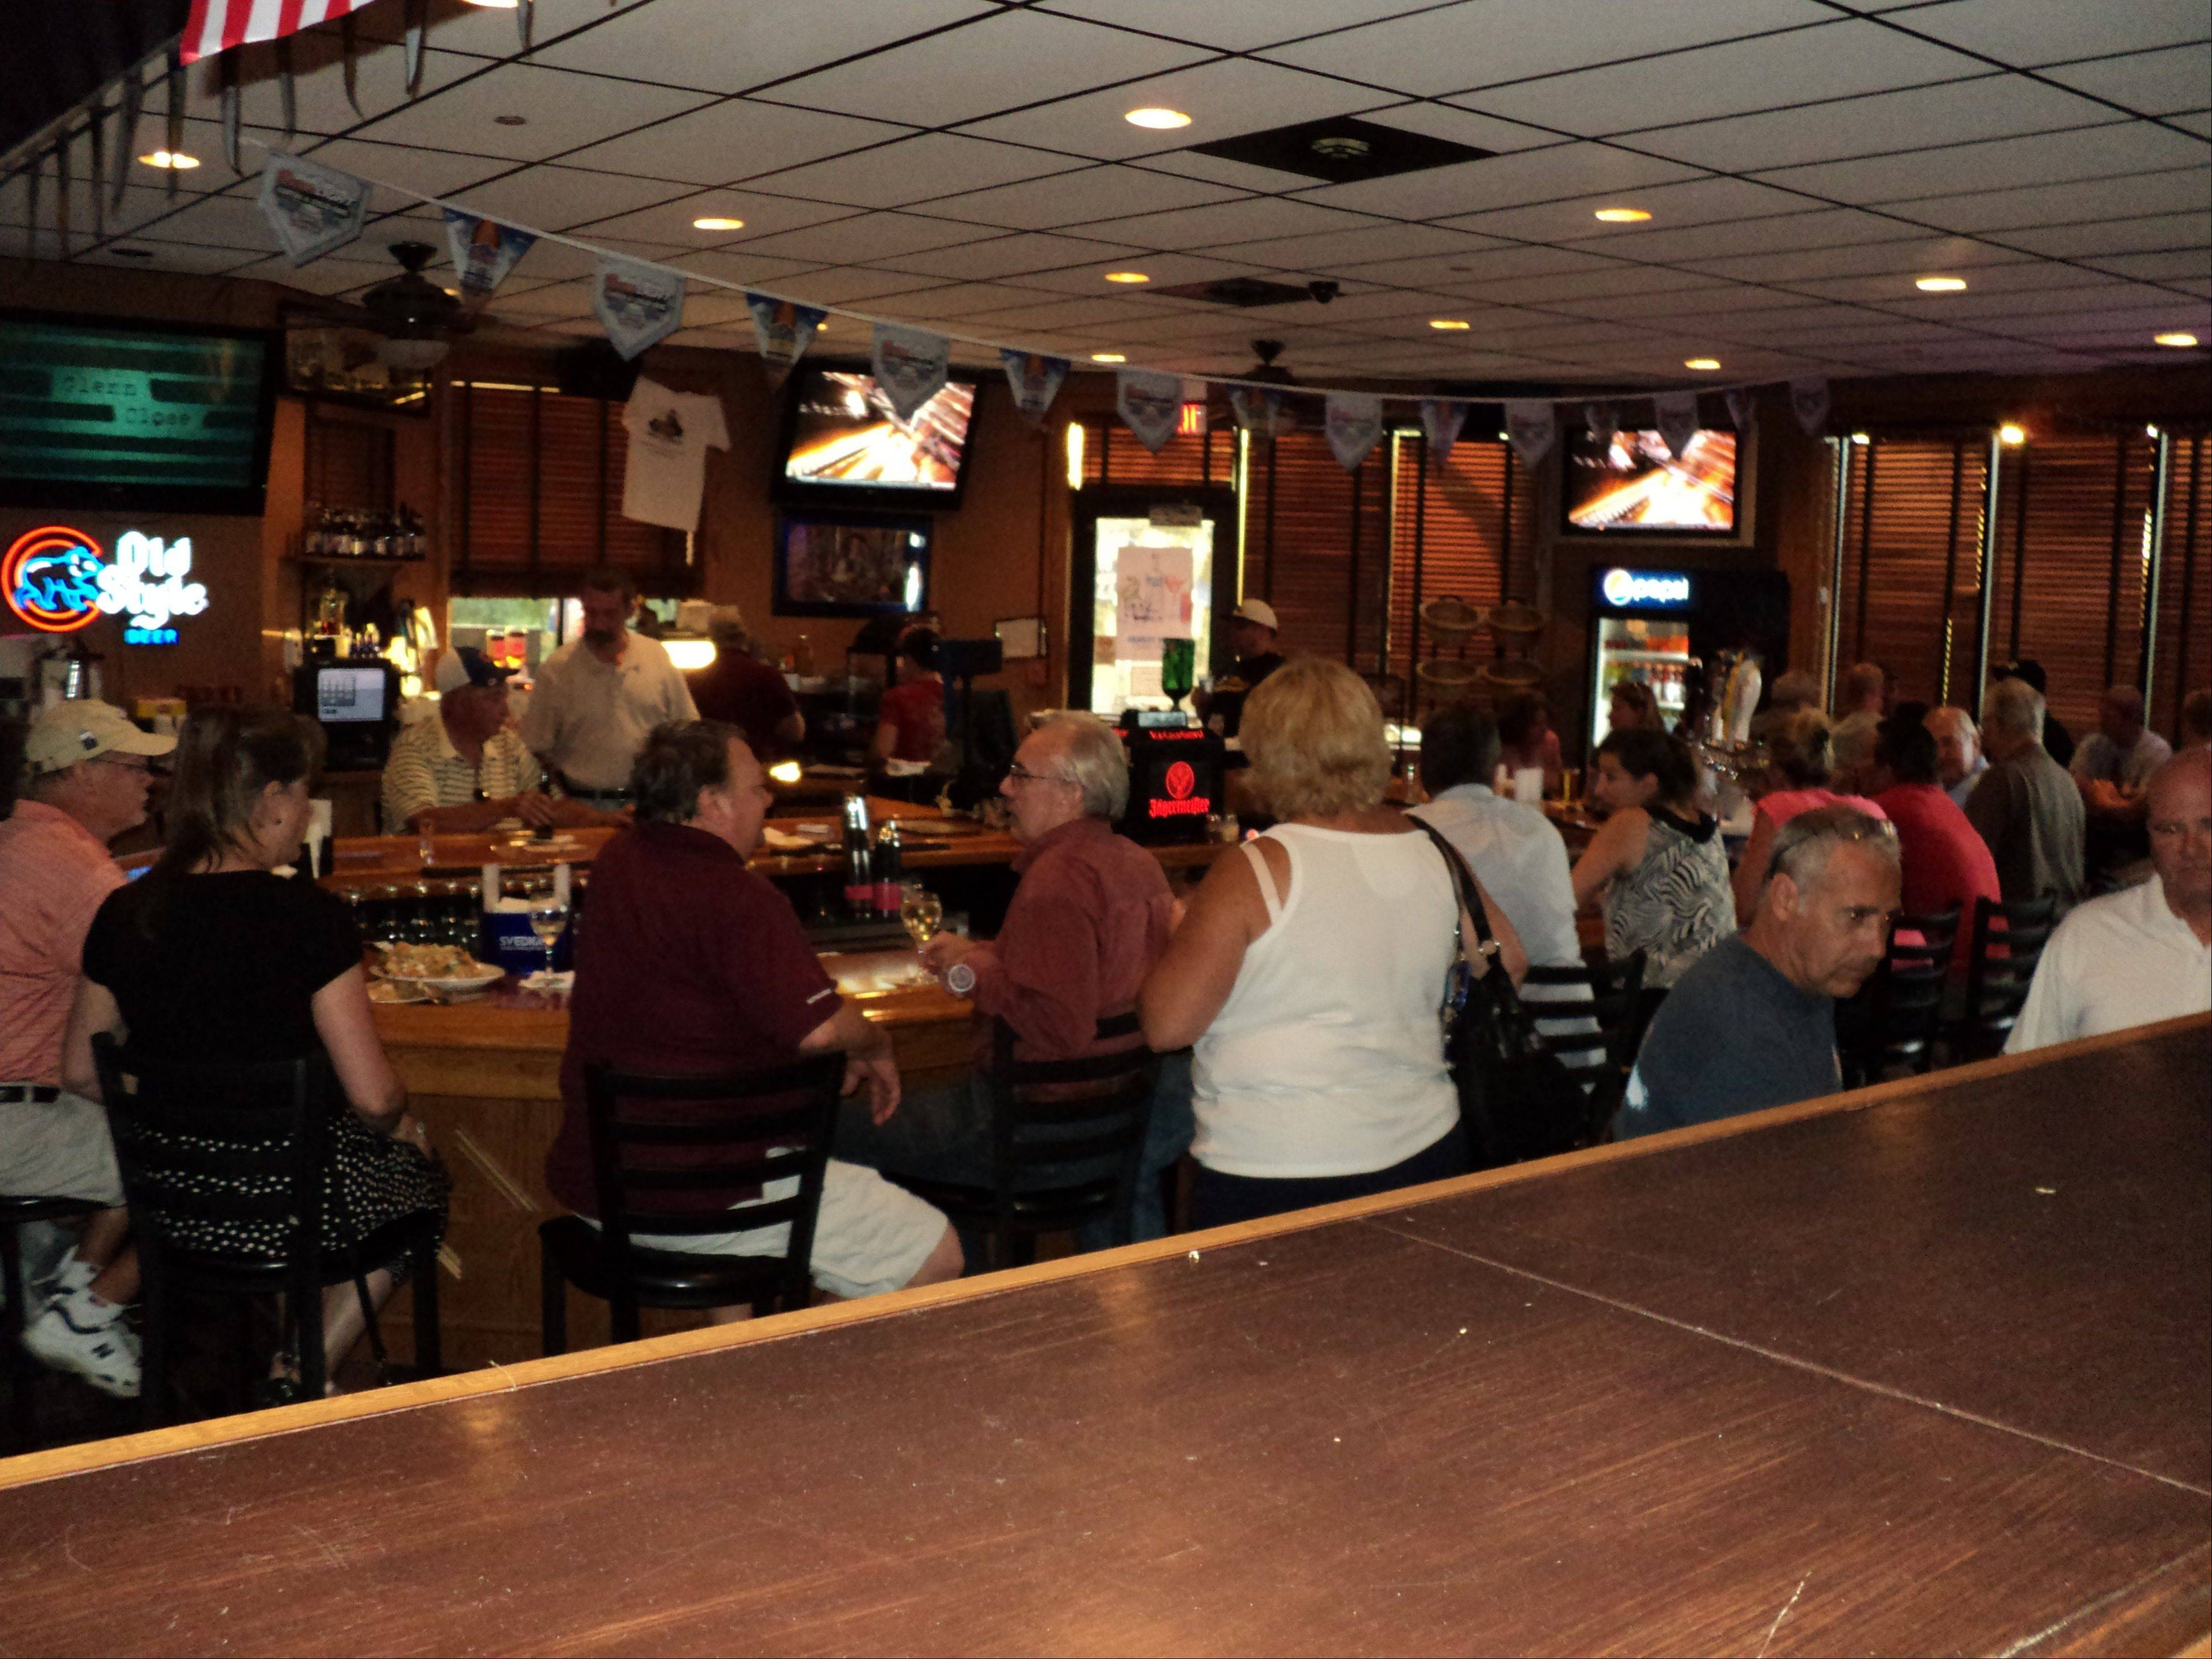 Powerless patrons on Monday packed the Village Bar and Grill in Buffalo Grove to seek an air-conditioned refuge after storms knocked out electricity.